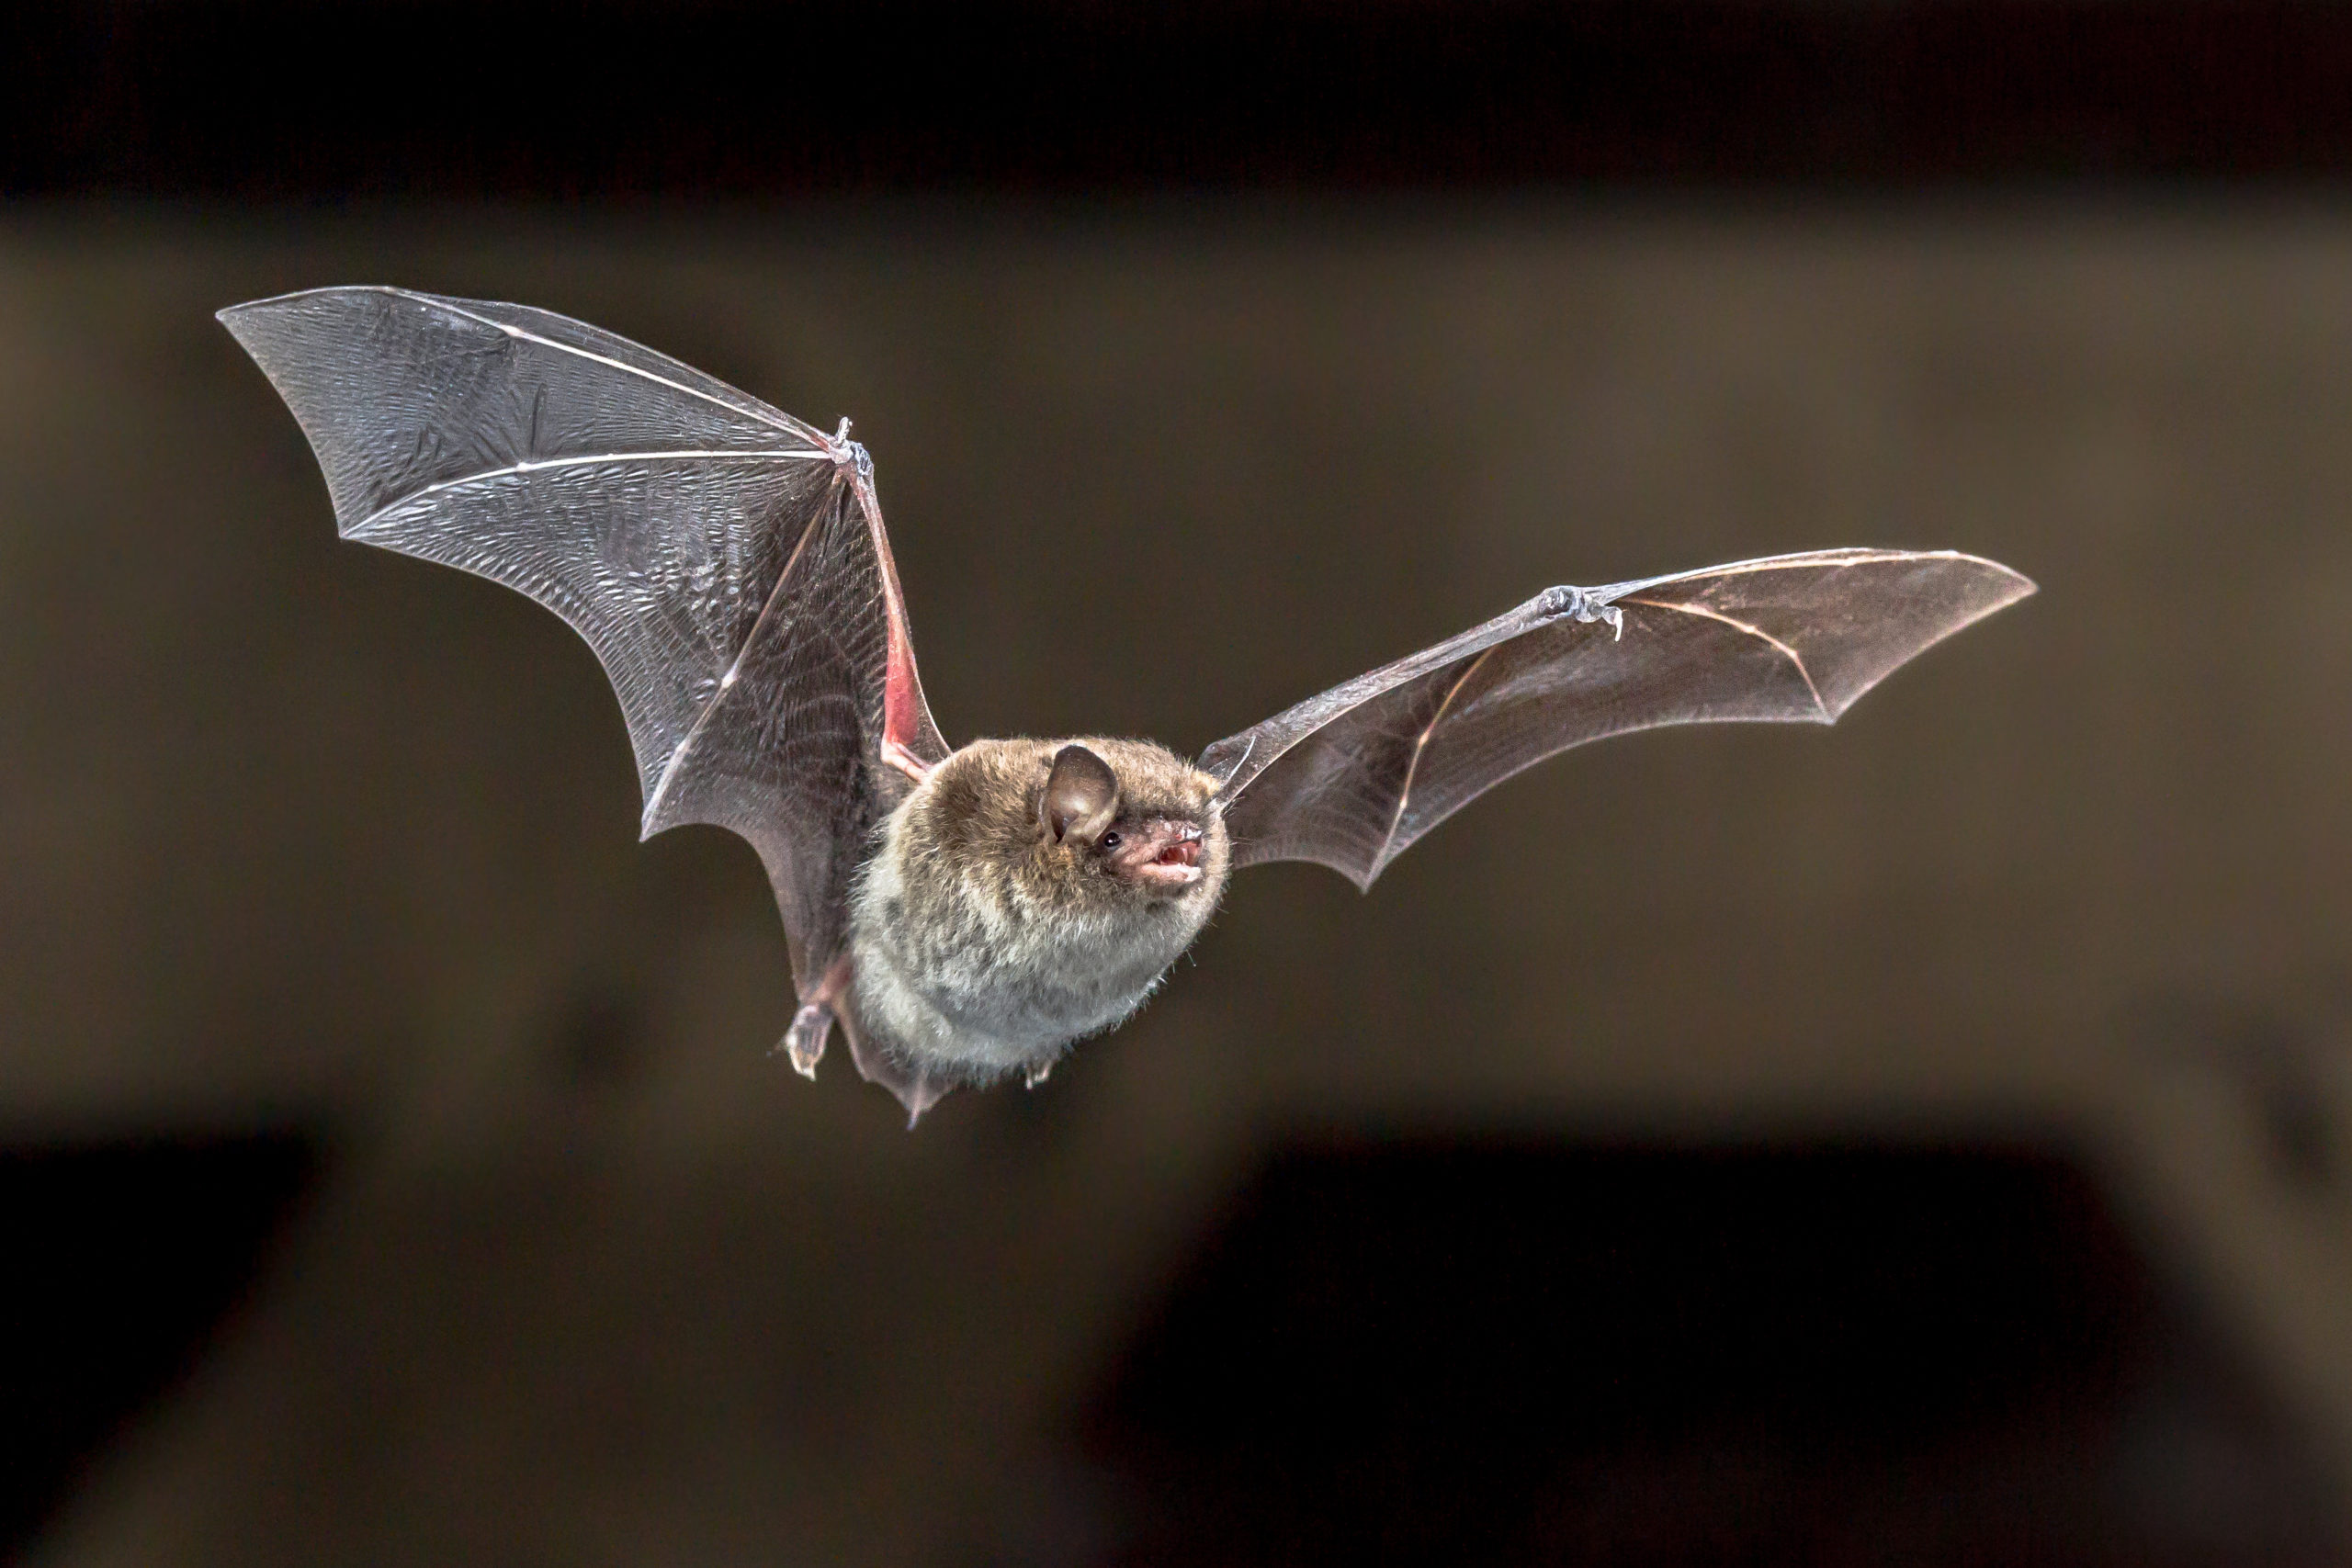 Image of a bat in the attic flying